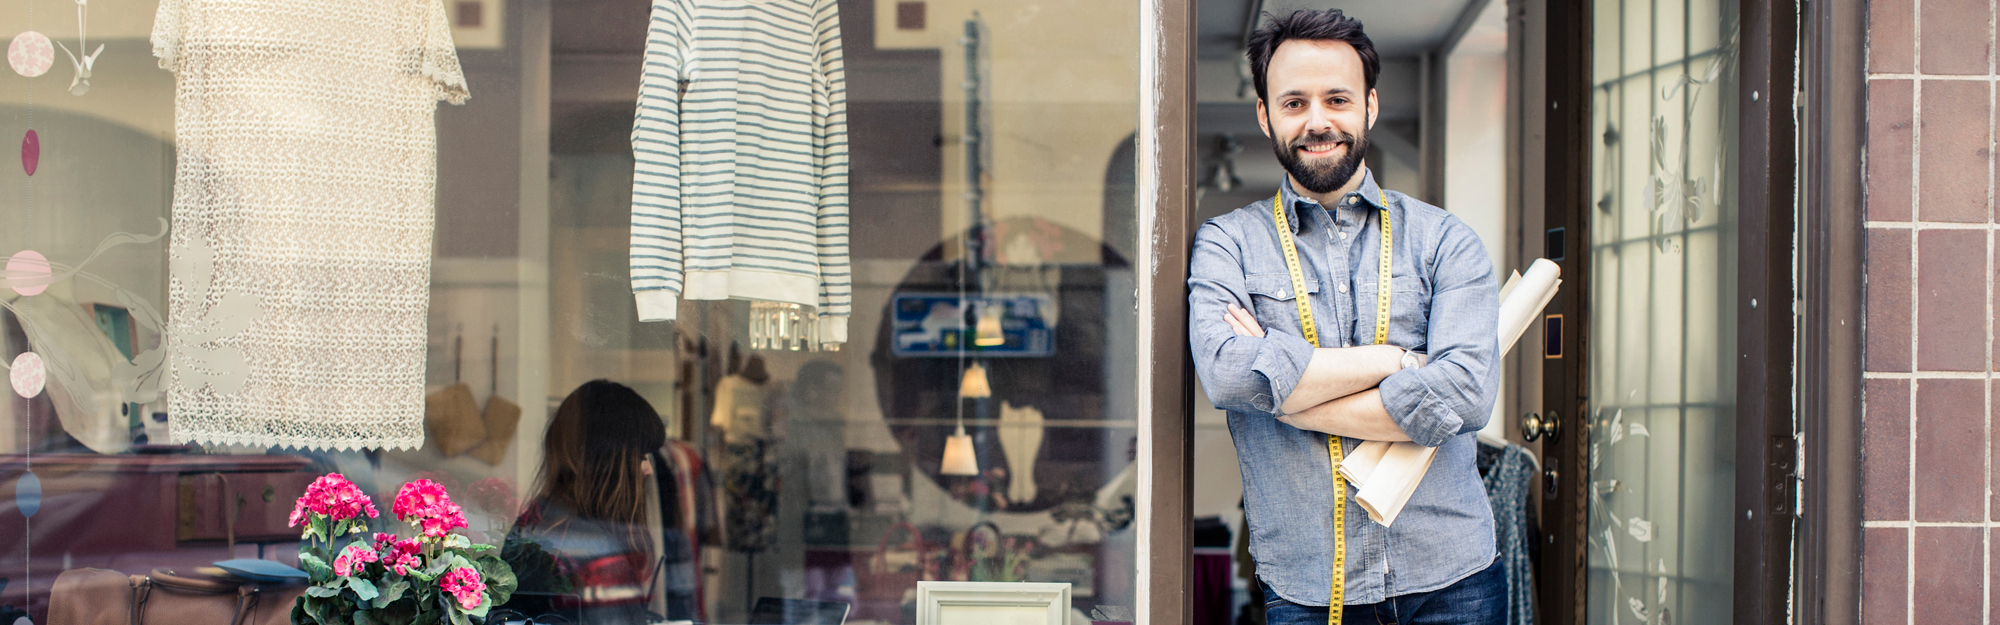 Man standing in doorway of shop with clothes in window